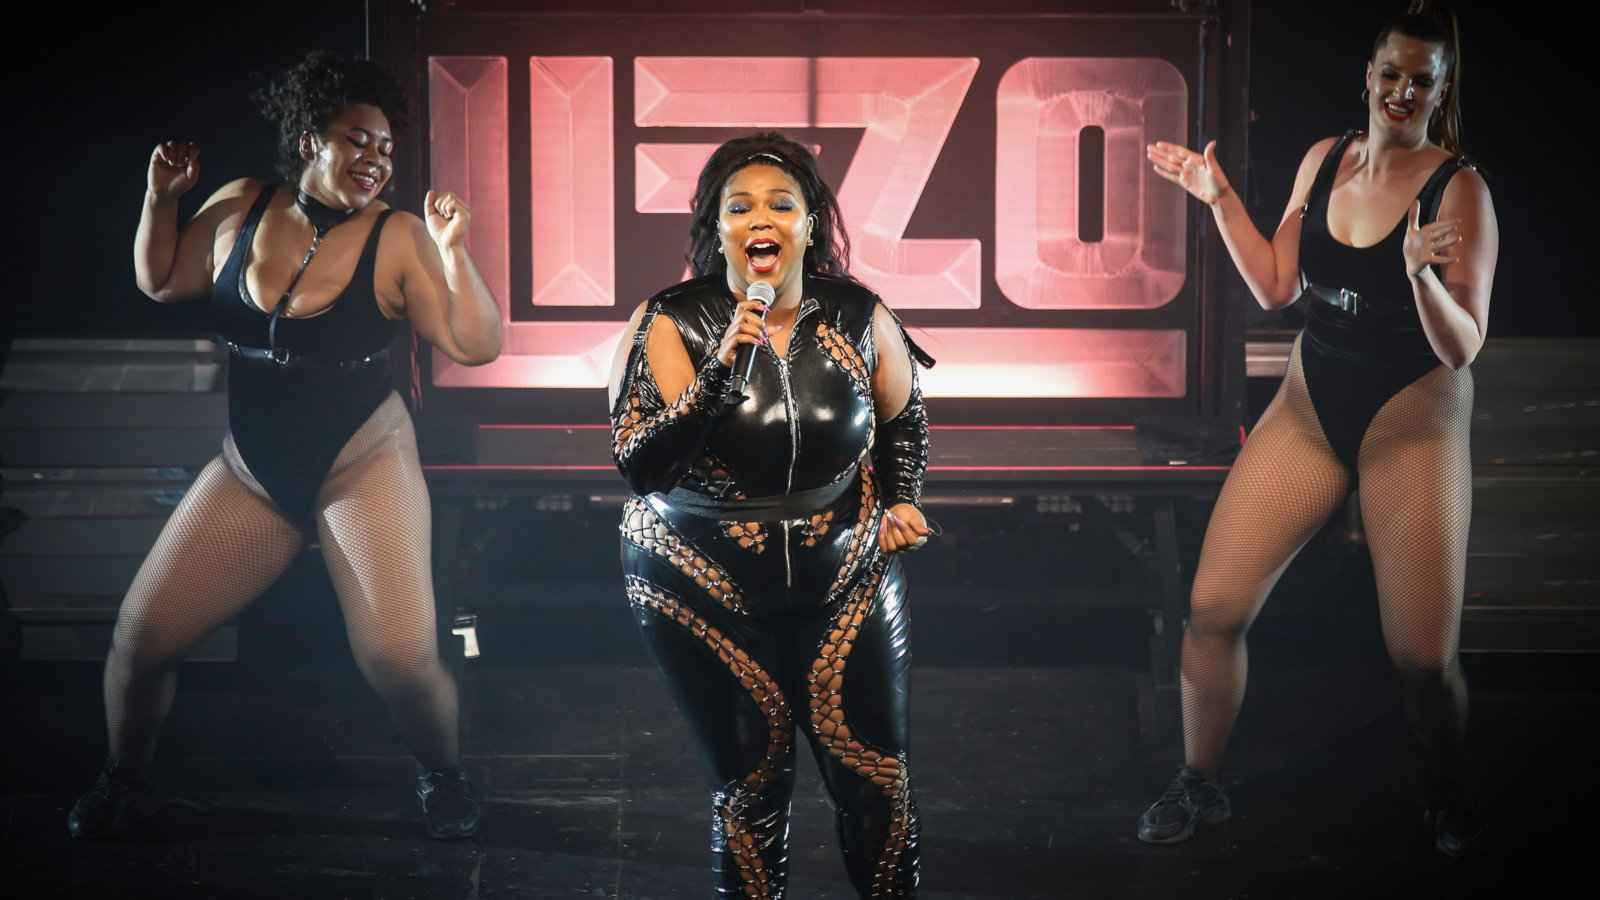 Lizzo is a powerhouse singer and a staunch gay ally